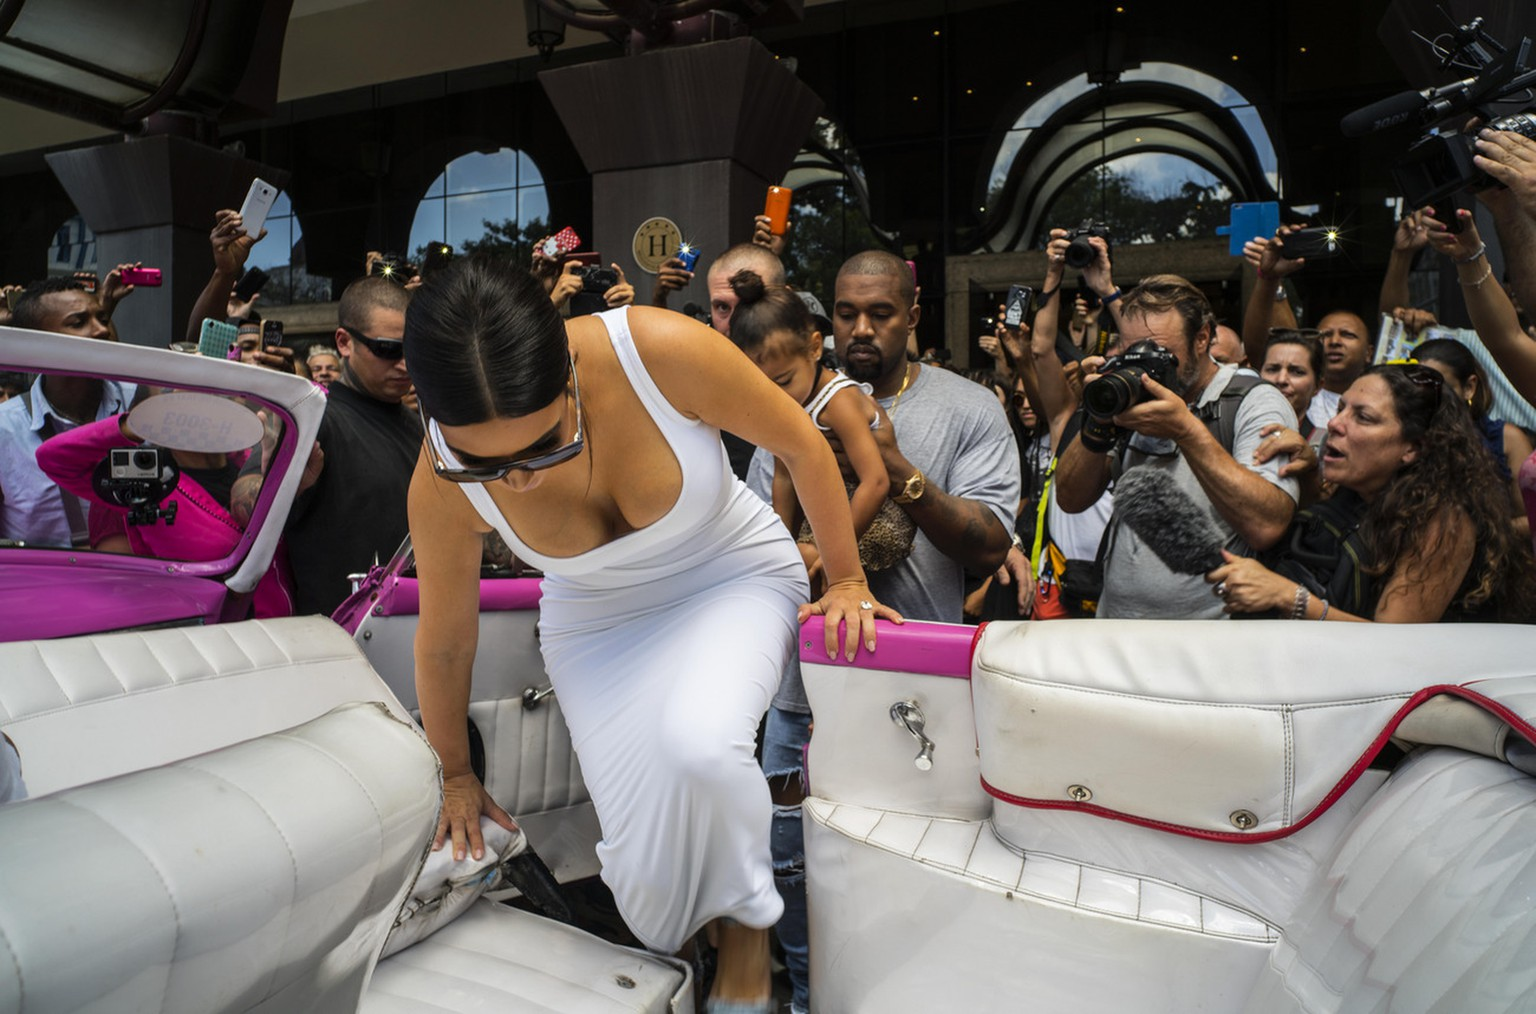 American reality-show star Kim Kardashian gets into a classic car, followed by her husband, rap singer Kanye West and their daughter North West in Havana, Cuba, Thursday, May 5, 2016. West, Kardashian and members of her reality-show-star family have become the latest celebrities to visit Havana. (AP Photo/Ramon Espinosa)